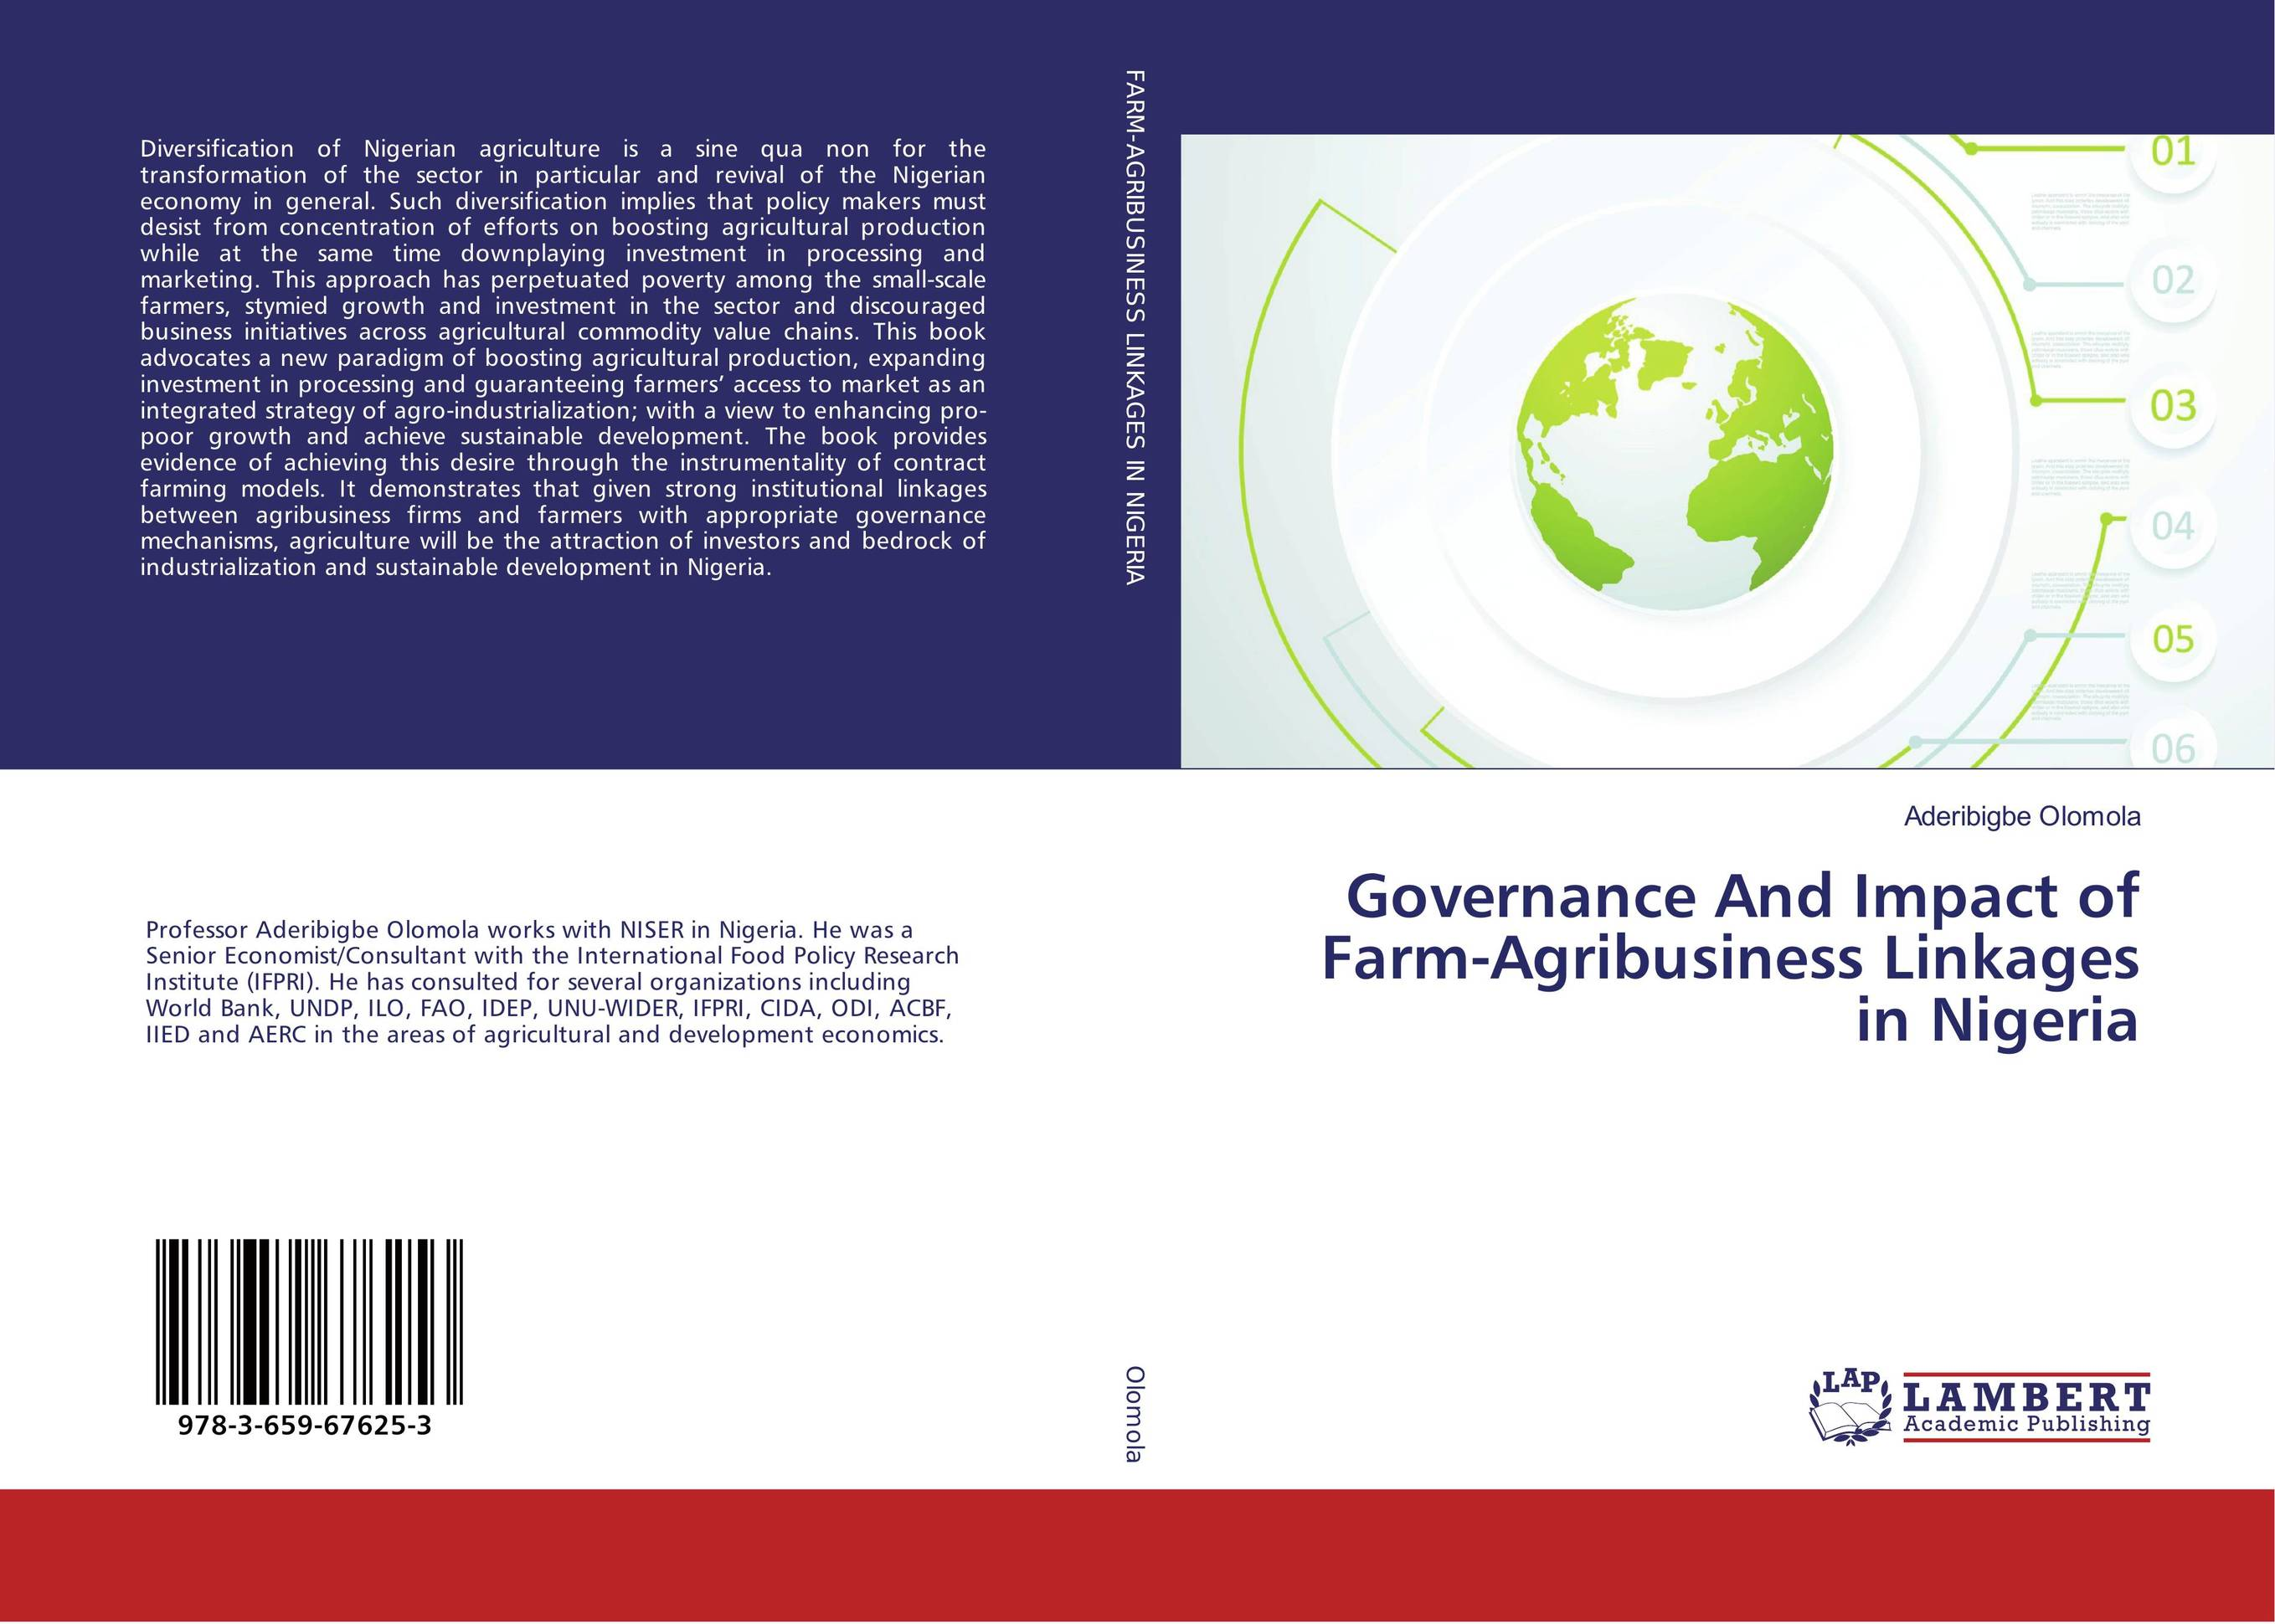 Governance And Impact of Farm-Agribusiness Linkages in Nigeria